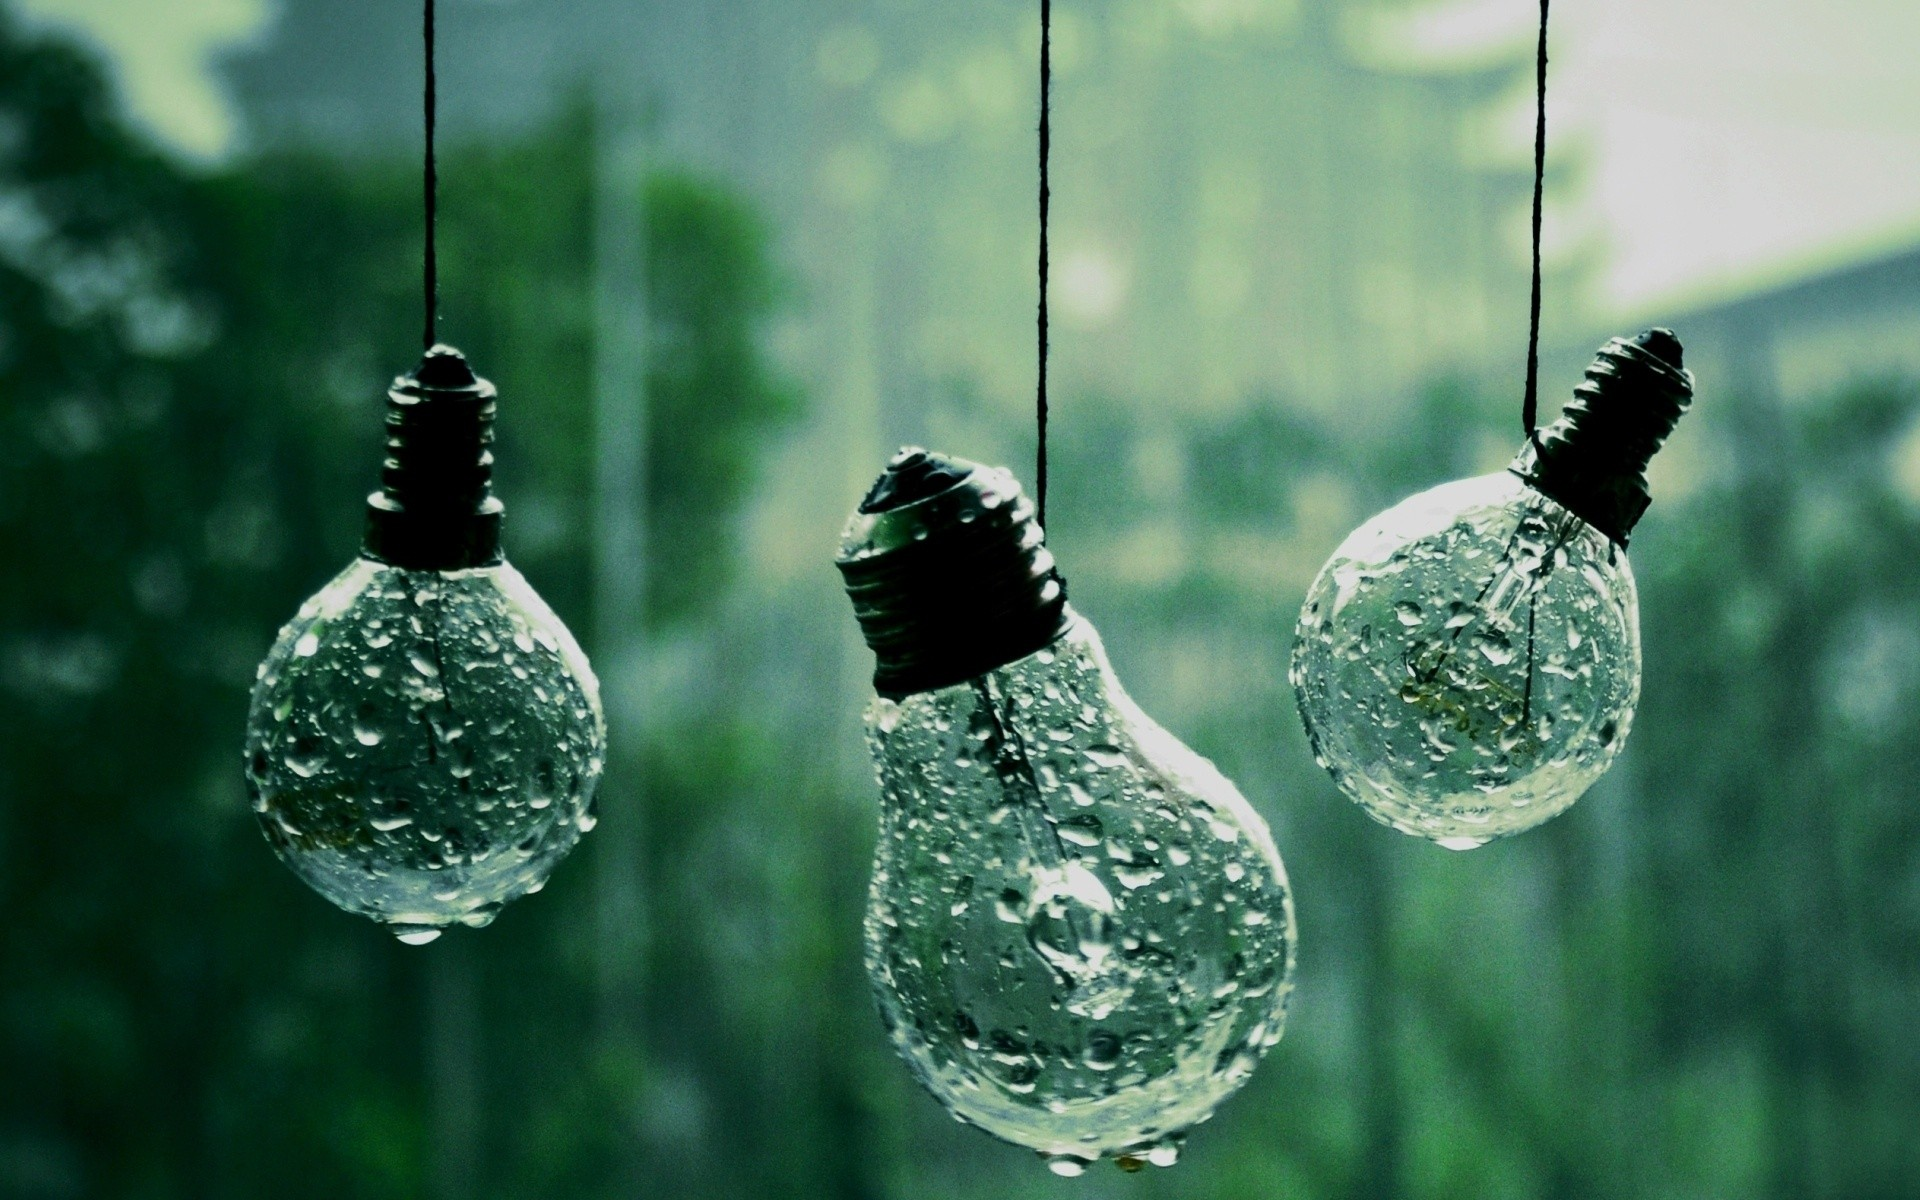 Man Made - Lightbulb  - Photography - Light - Bulbs - Artistic Wallpaper